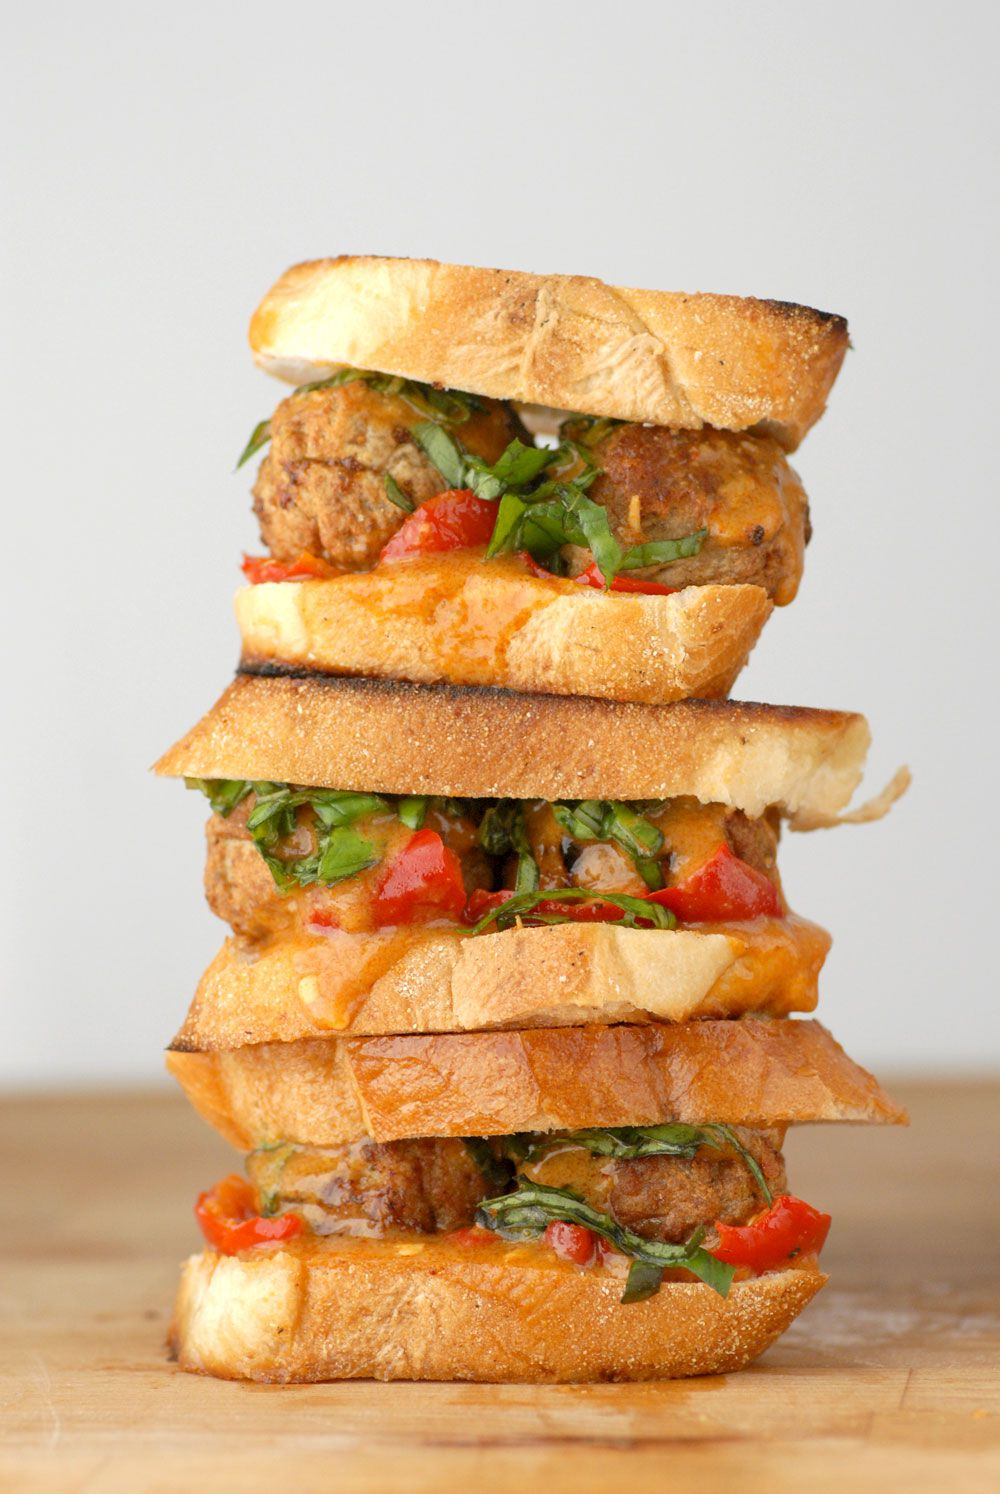 Curried Meatball Sliders With Cherry Peppers and Thai Basil